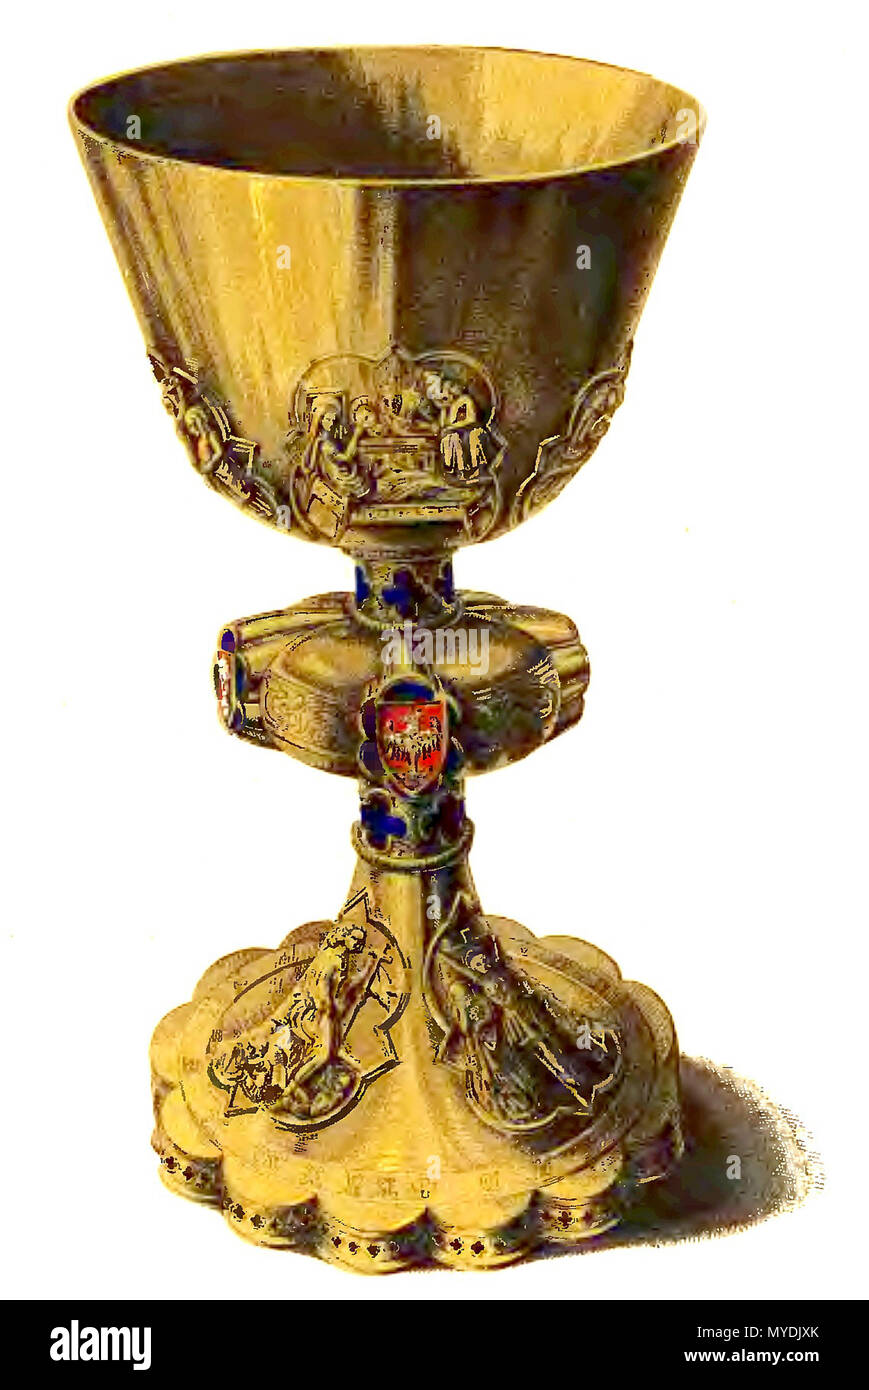 . Stopnica chalice f XIV century founded by Casimir III of Poland . 19th century. Maksymilian Fajans 148 Dtopnica chalice - Stock Image